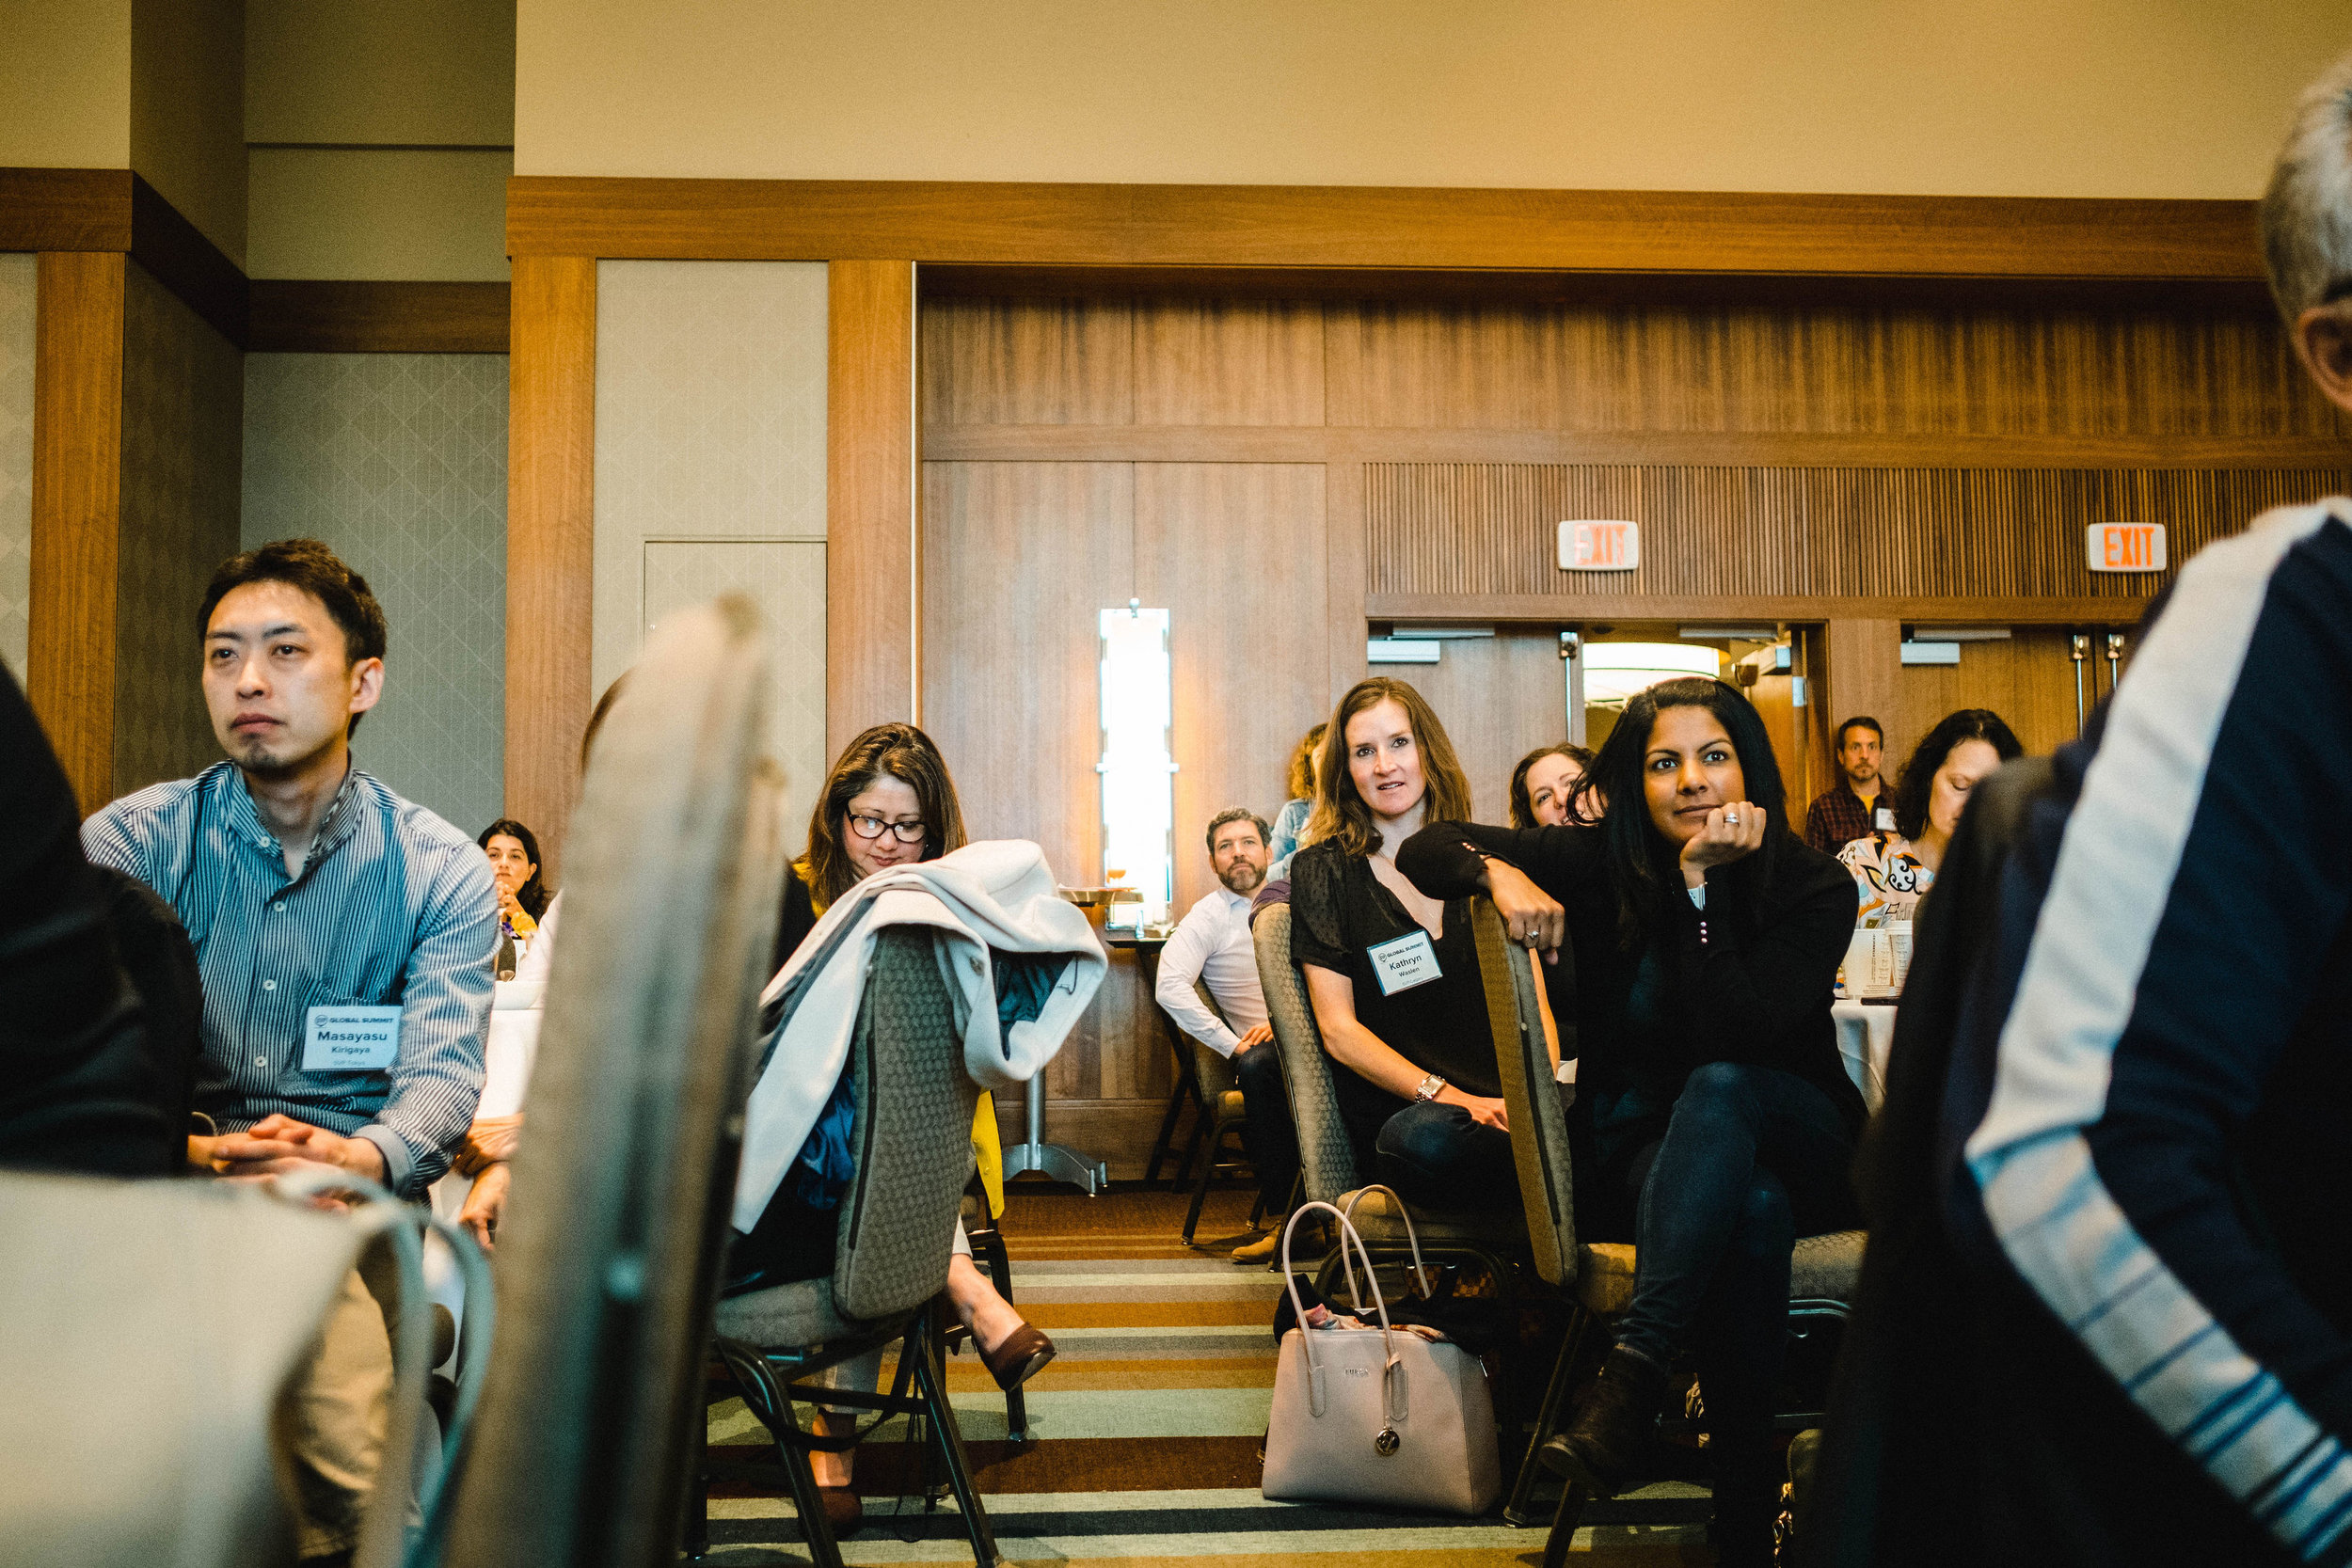 Breakout Sessions - The 2019 Summit offered 19 breakout sessions, on topics SVP Partners and Staff identified as central to our work and the future of engaged philanthropy.Explore content themes >Browse session materials >